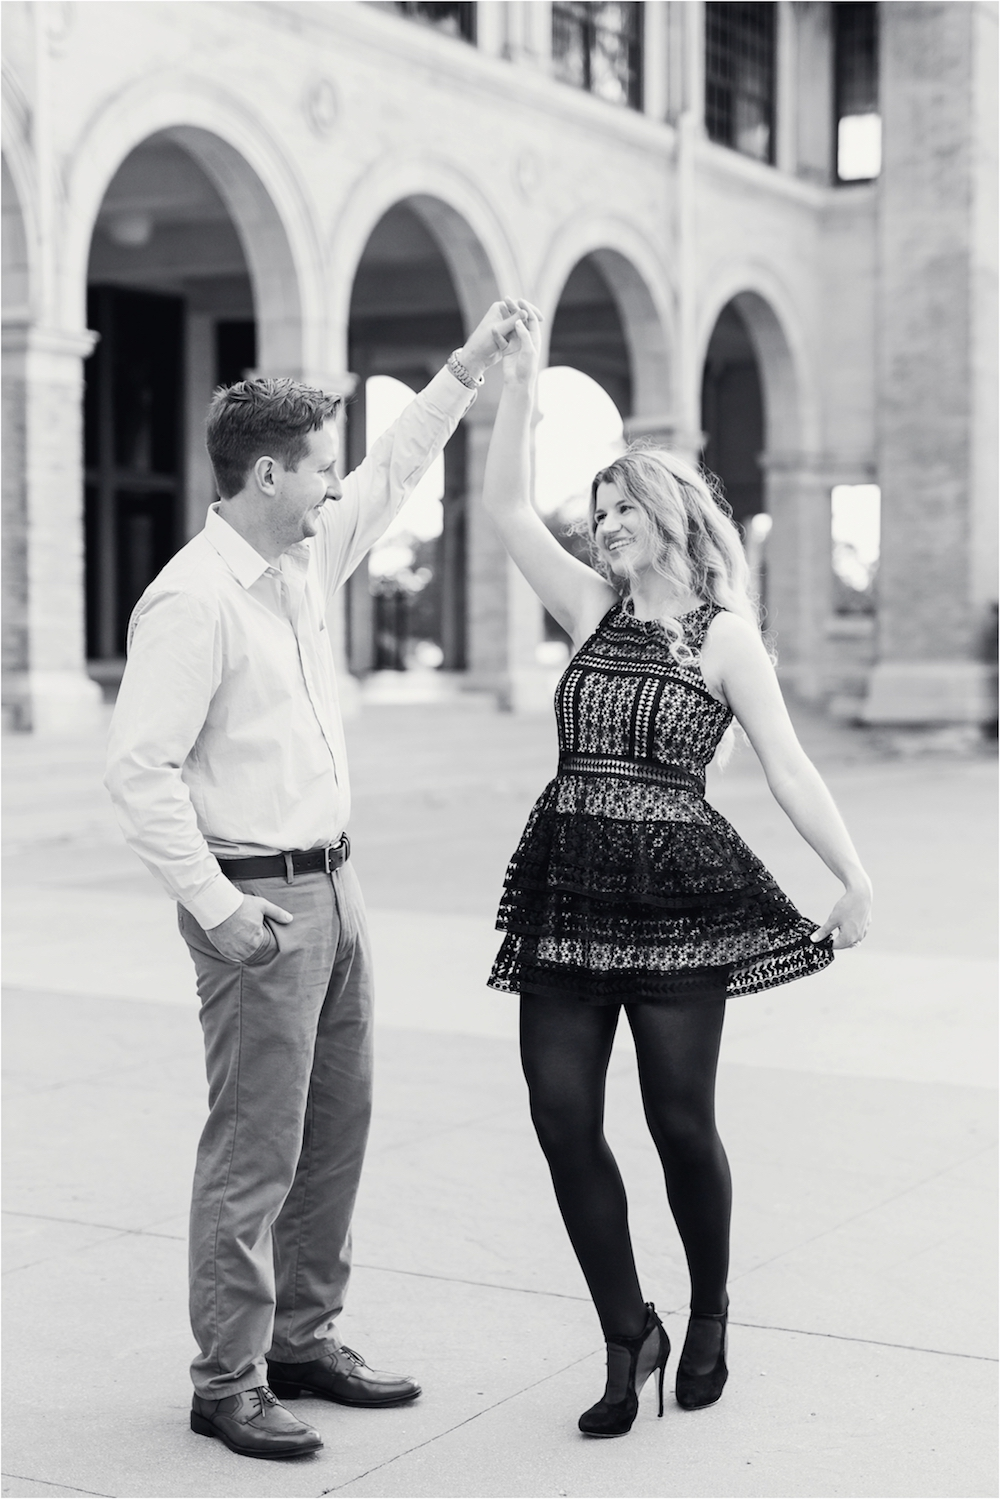 bell-isle-detroit-michigan-casino-fountain-dressy-elegant-engagement-photo-33.jpg